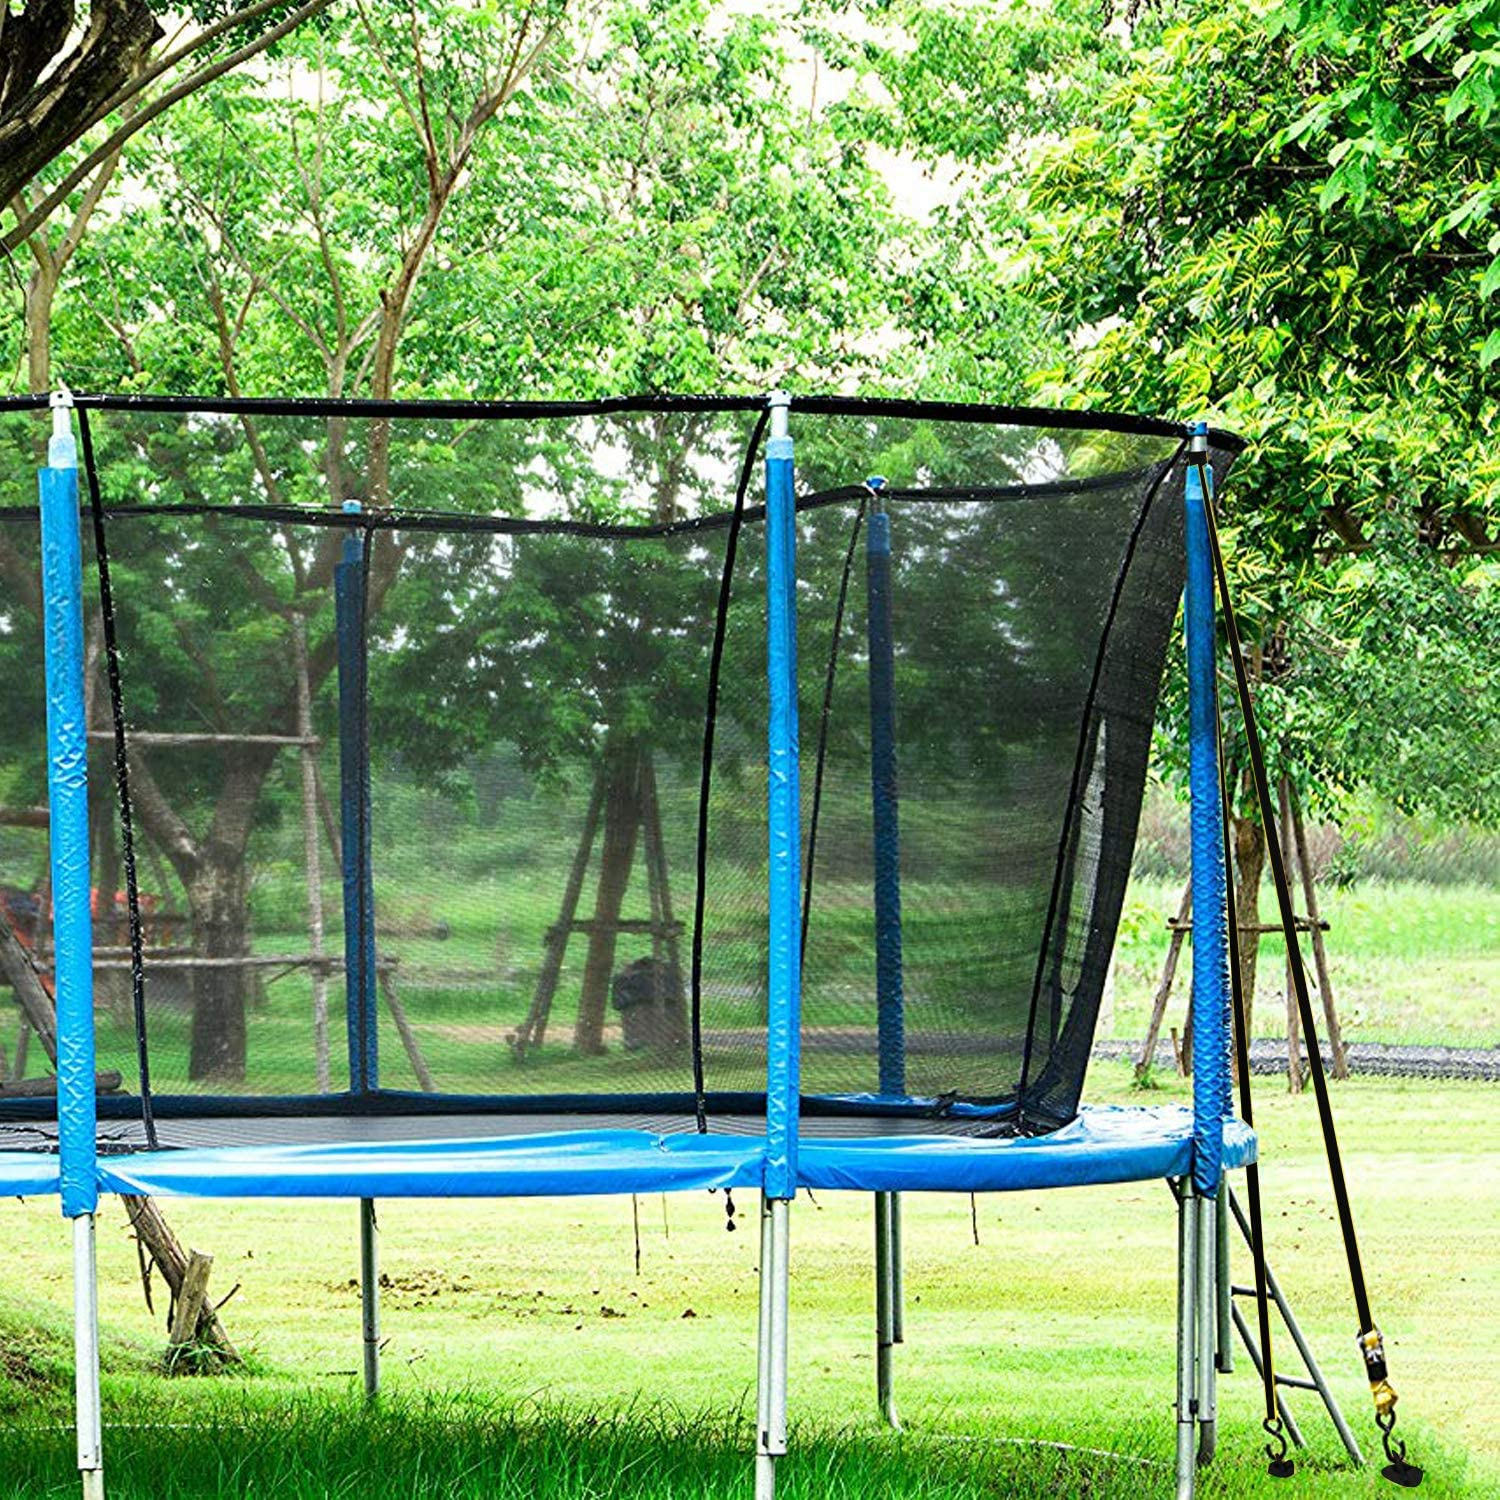 Tent Bonus tie-Downs for Tethering The Dog Portable Basketball Goal ABCCANOPY Spiral Ground Anchor with Dog Tie Out Trampoline Anchor Stakes for Anchor Swings Set Down